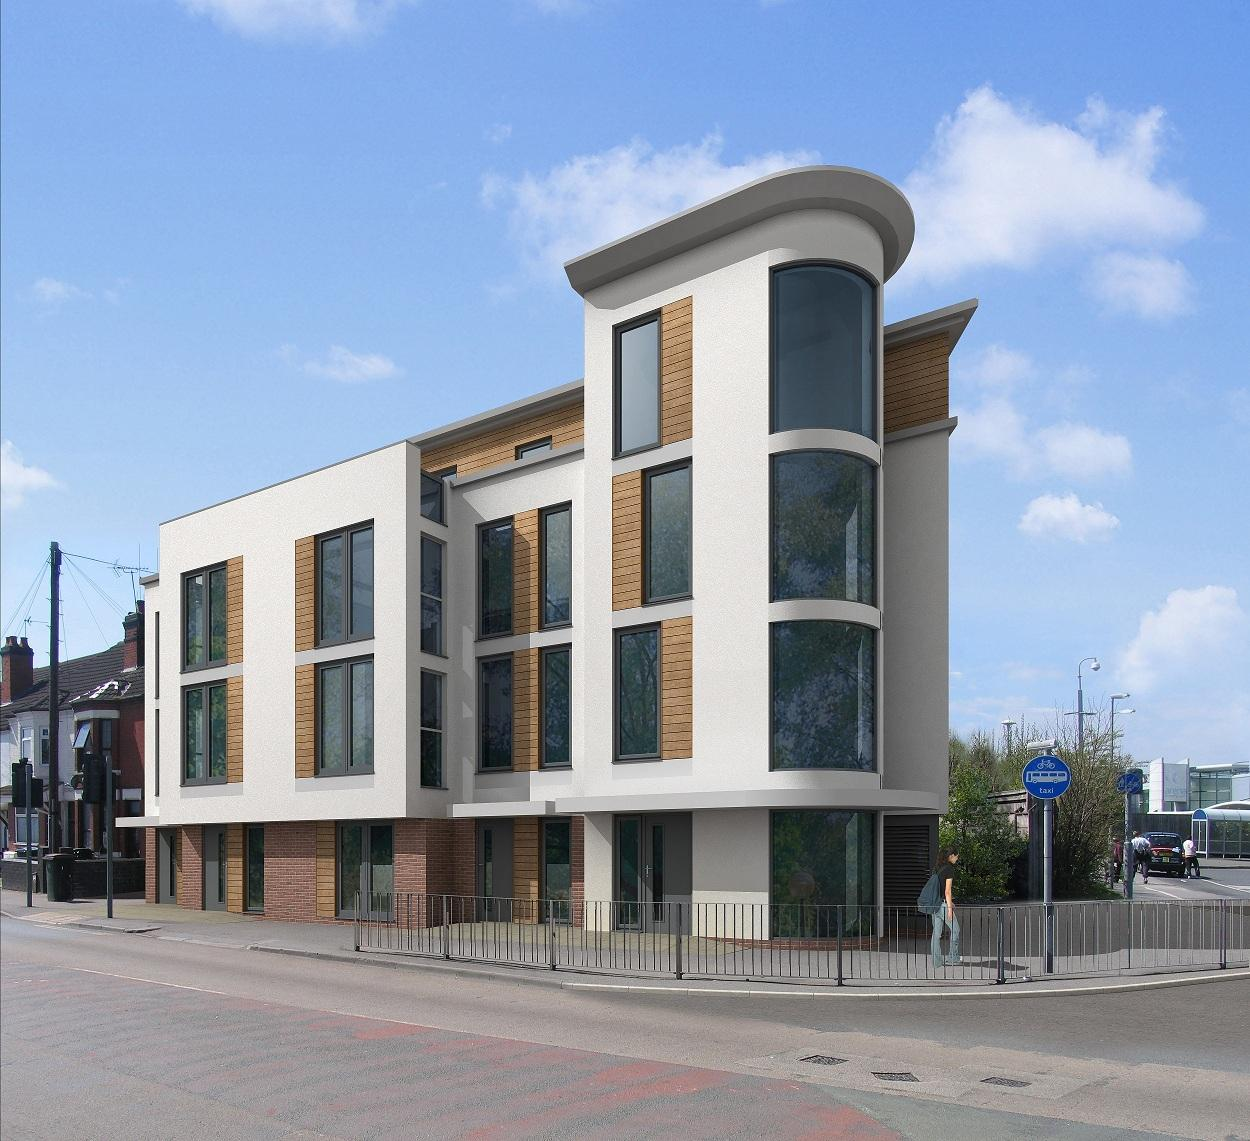 Commercial Property For Sale On Foleshill Road Coventry